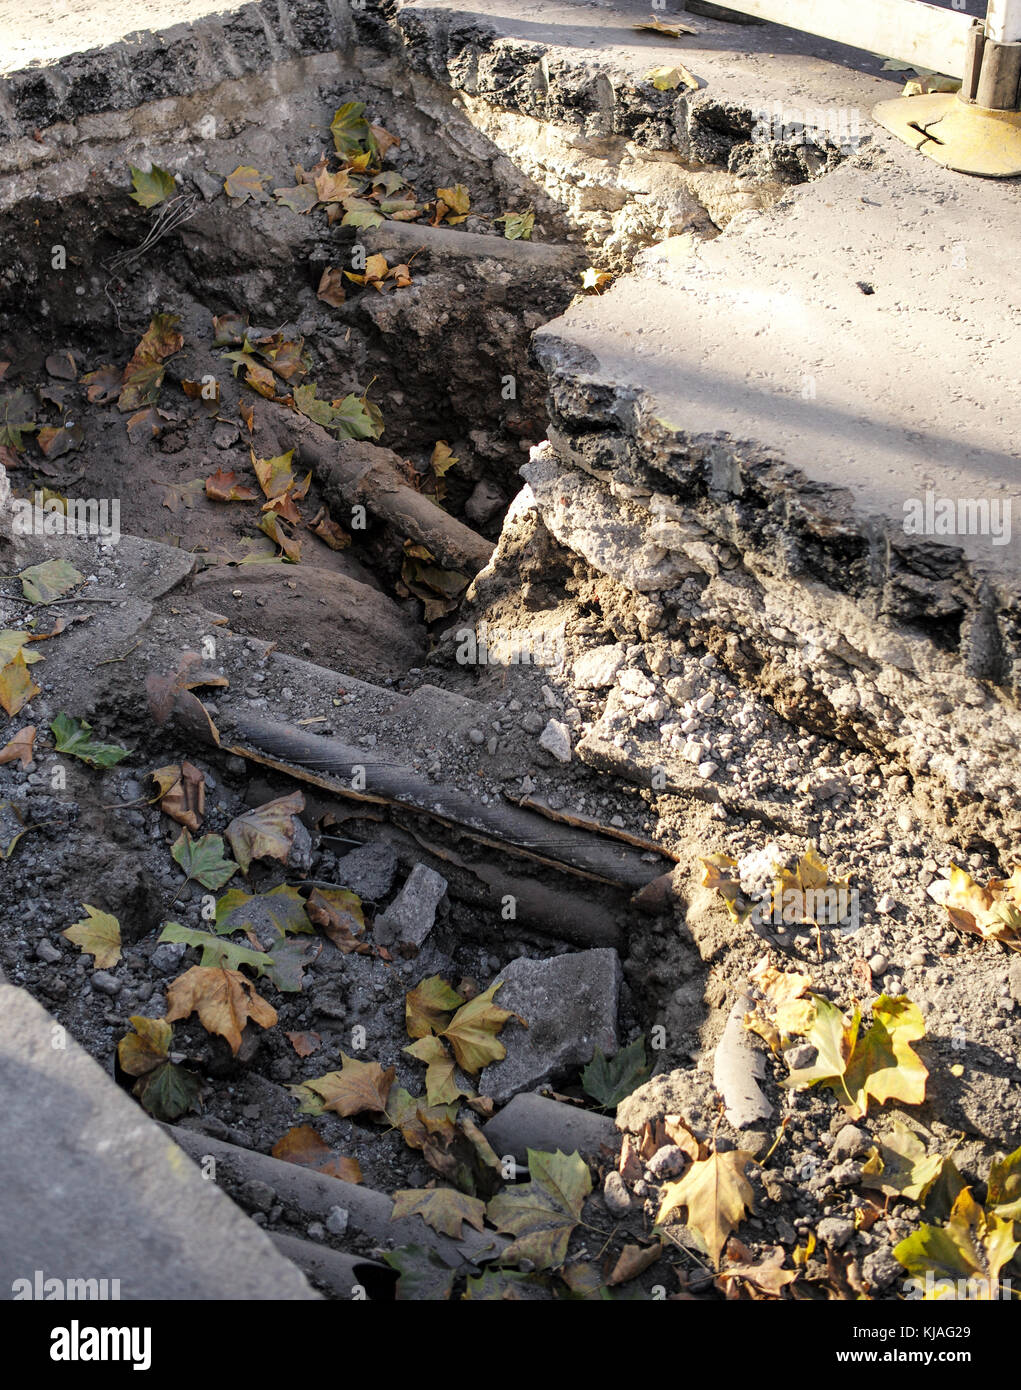 A hole in the road exposing utilities in central London England - Stock Image